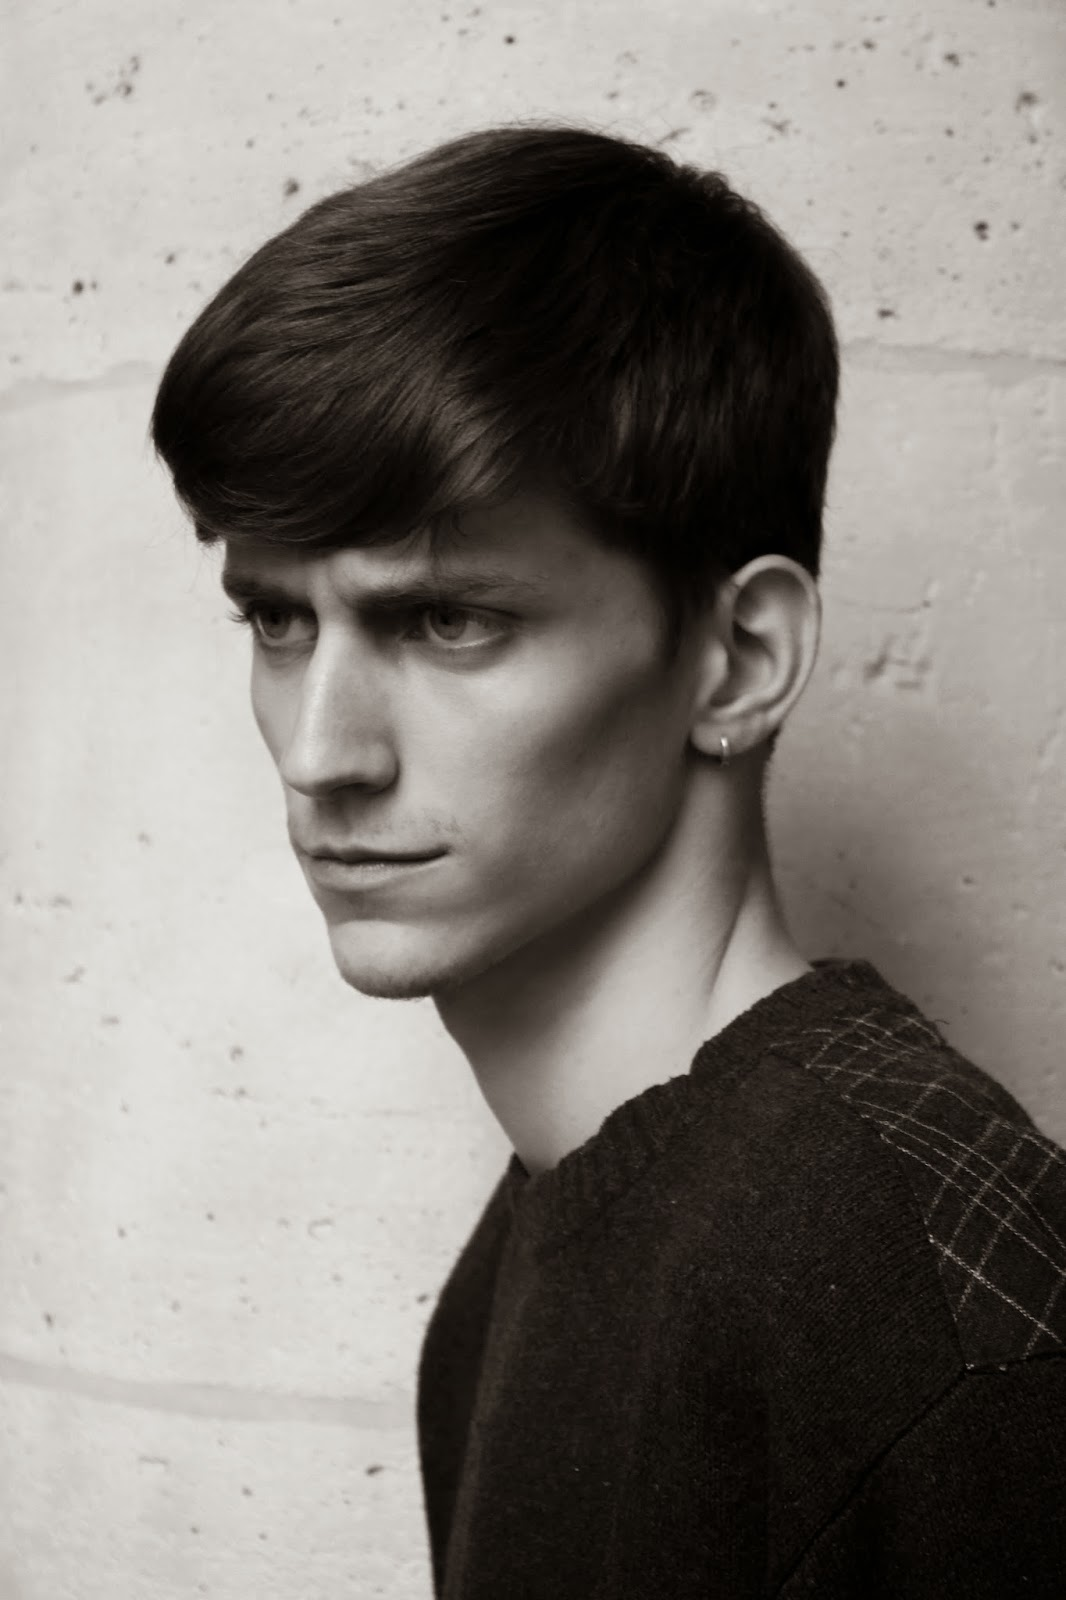 NICHOLAS C. (MAJOR MODEL MANAGEMENT) 2 NICHOLAS C. (MAJOR MODEL MANAGEMENT)